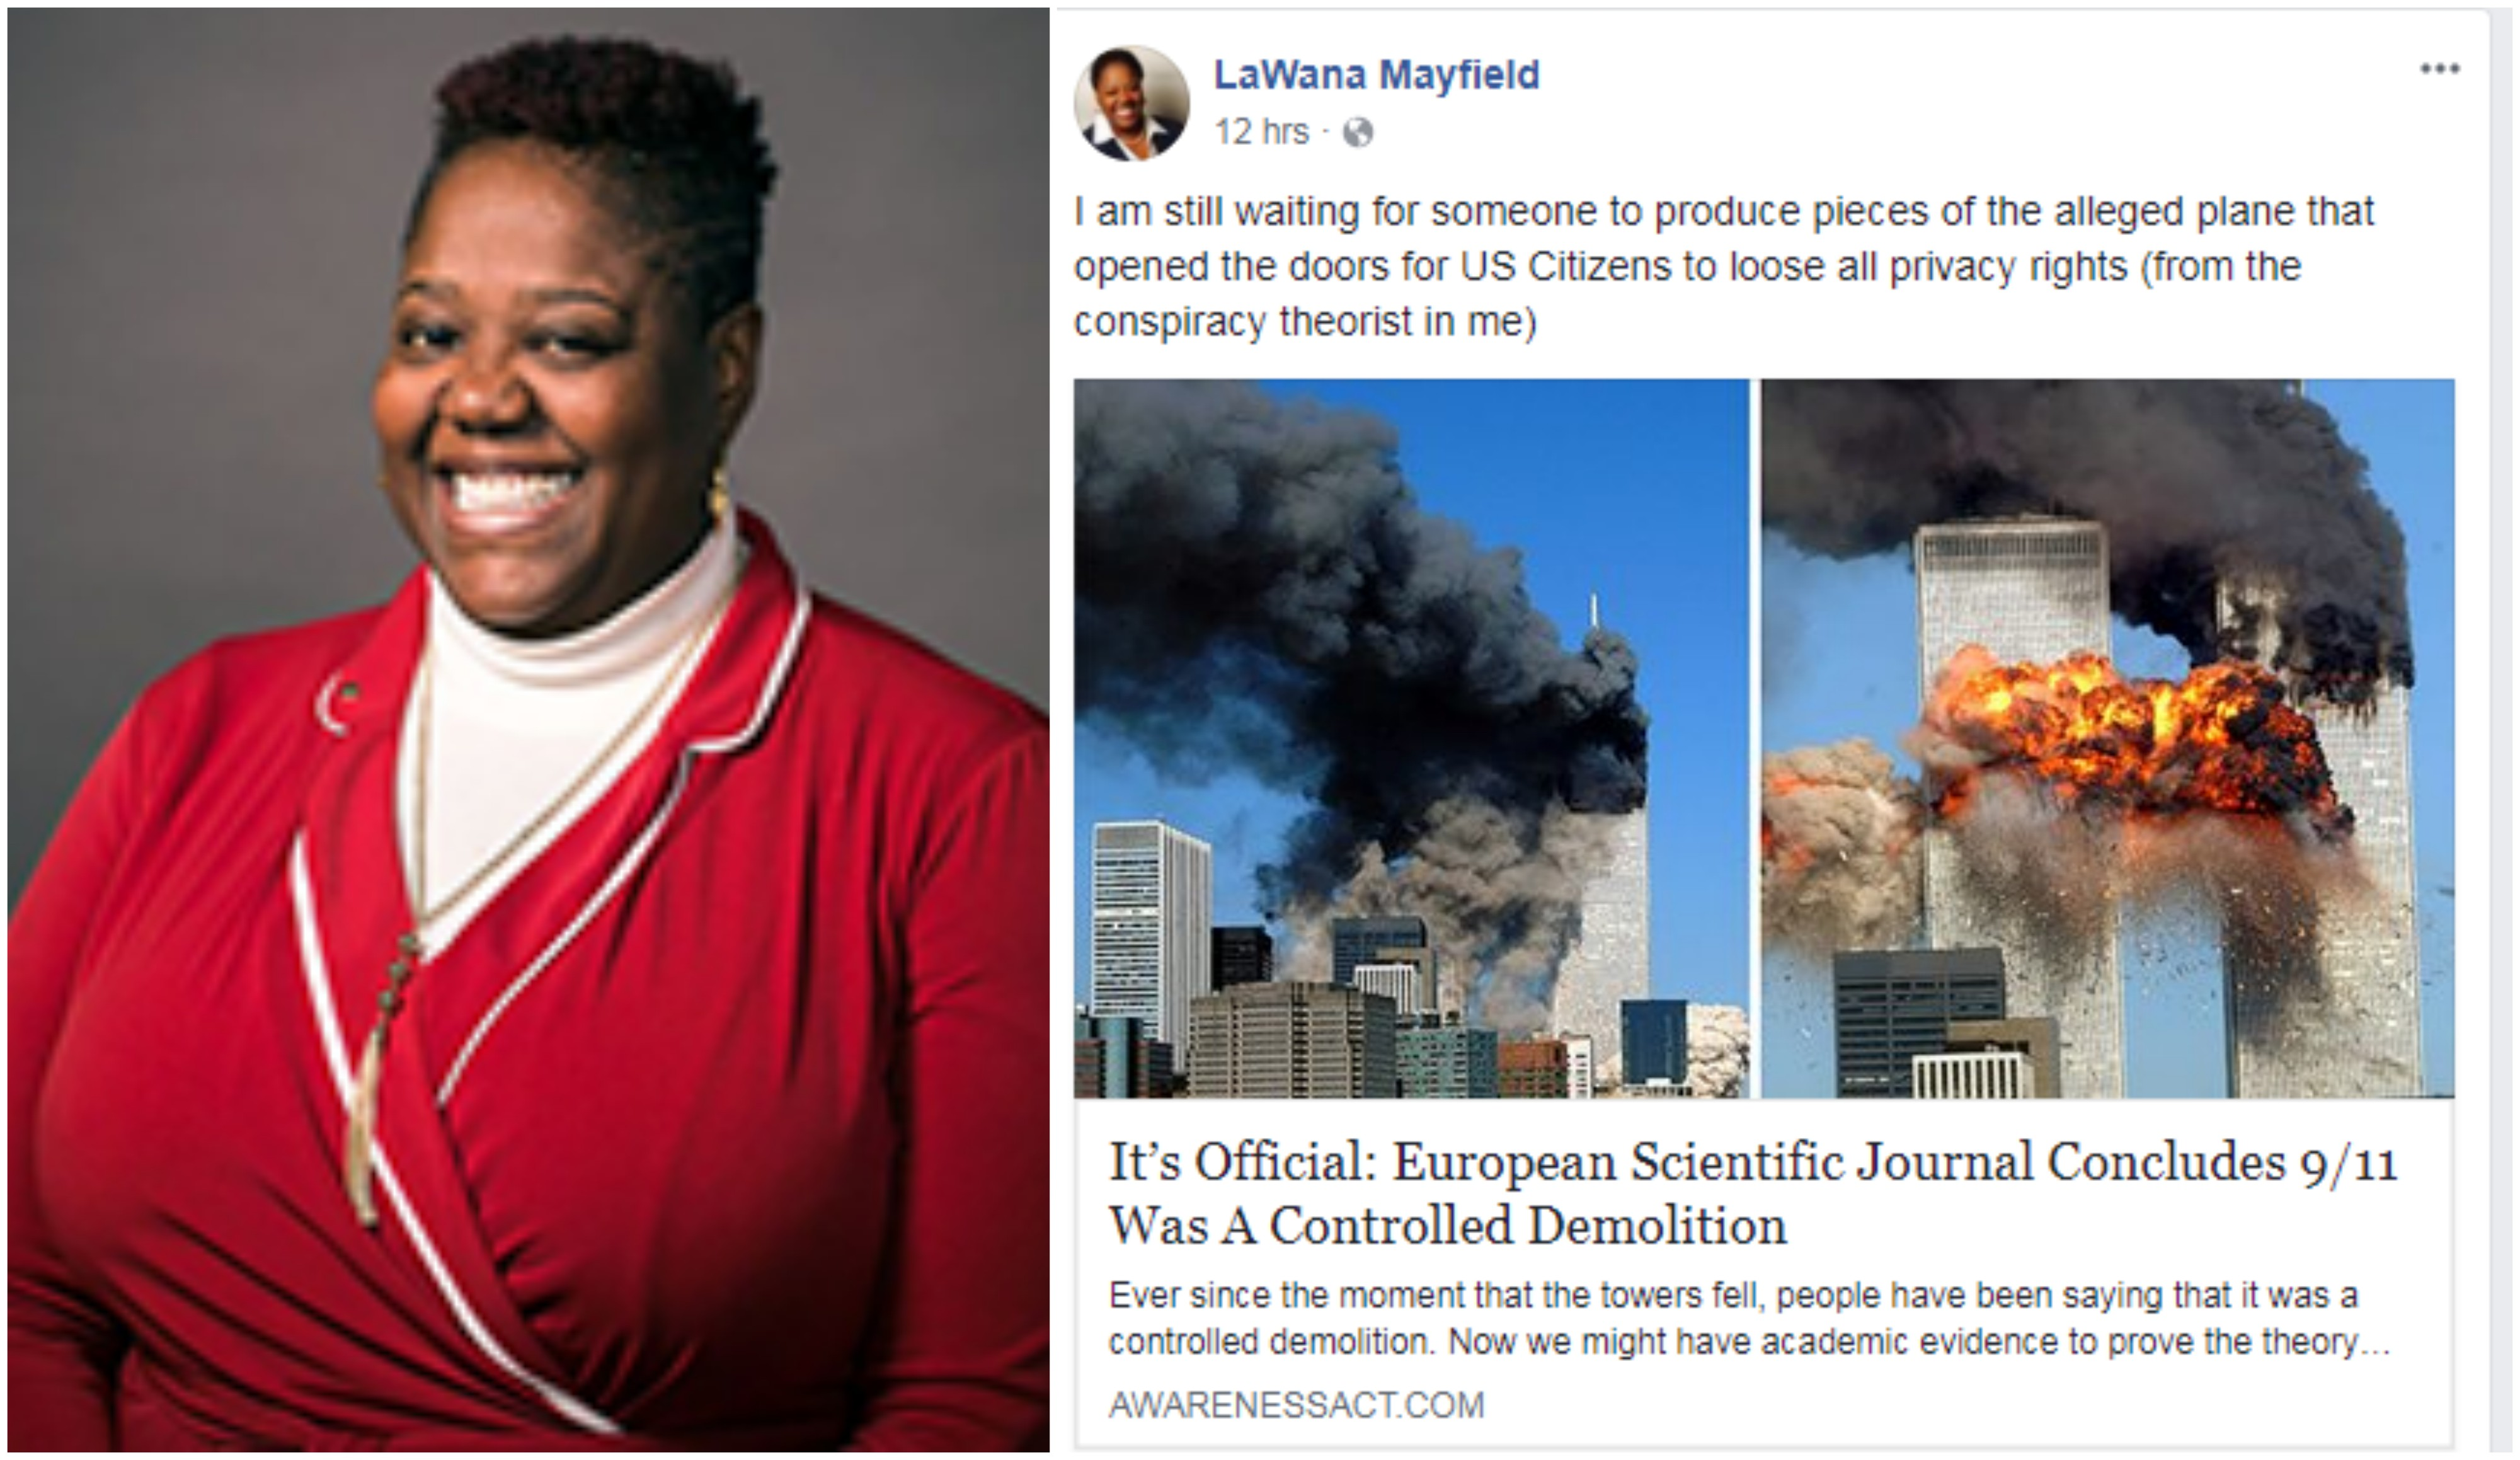 Council Member Mayfield Pushes 9 11 Conspiracy Theory In Facebook Post